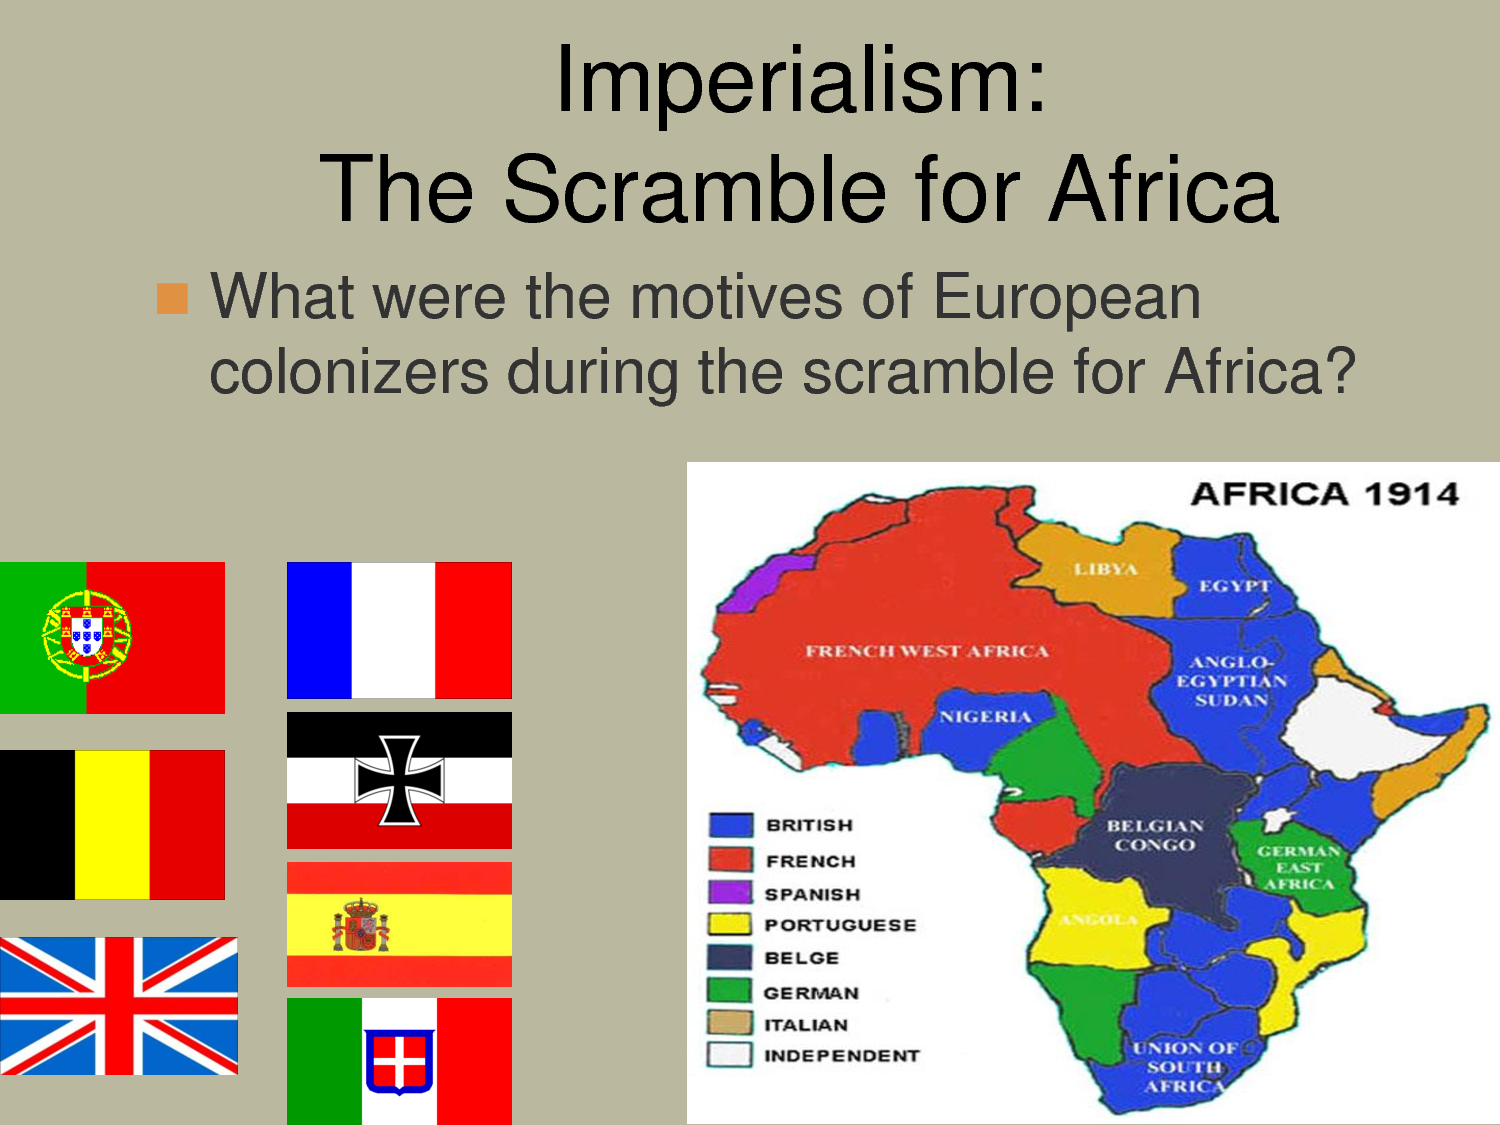 british imperialism in africa | Imperialism The Scramble for